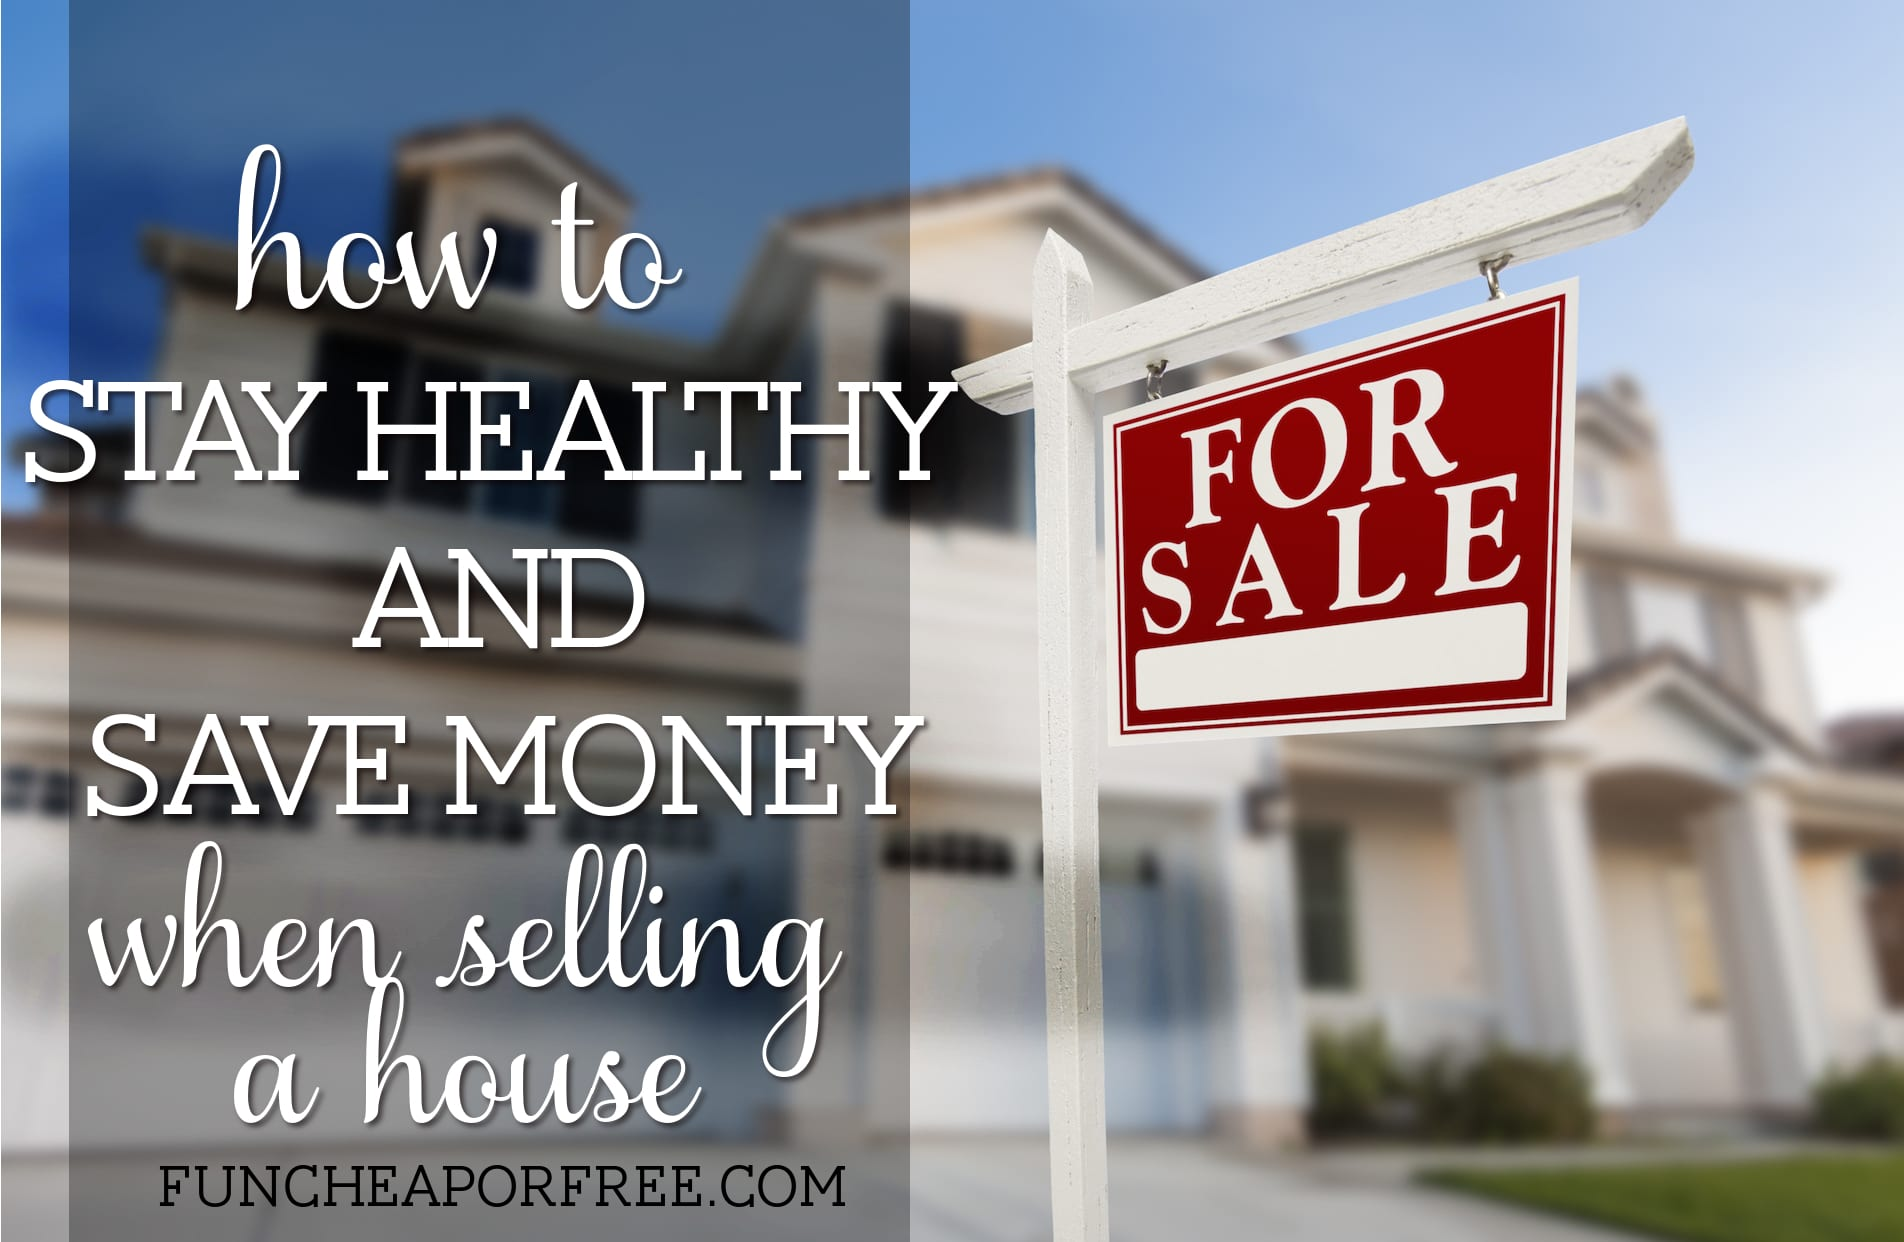 amazing tips for selling a house without going broke or gaining 100b! So reading this! From FunCheapOrFree.com